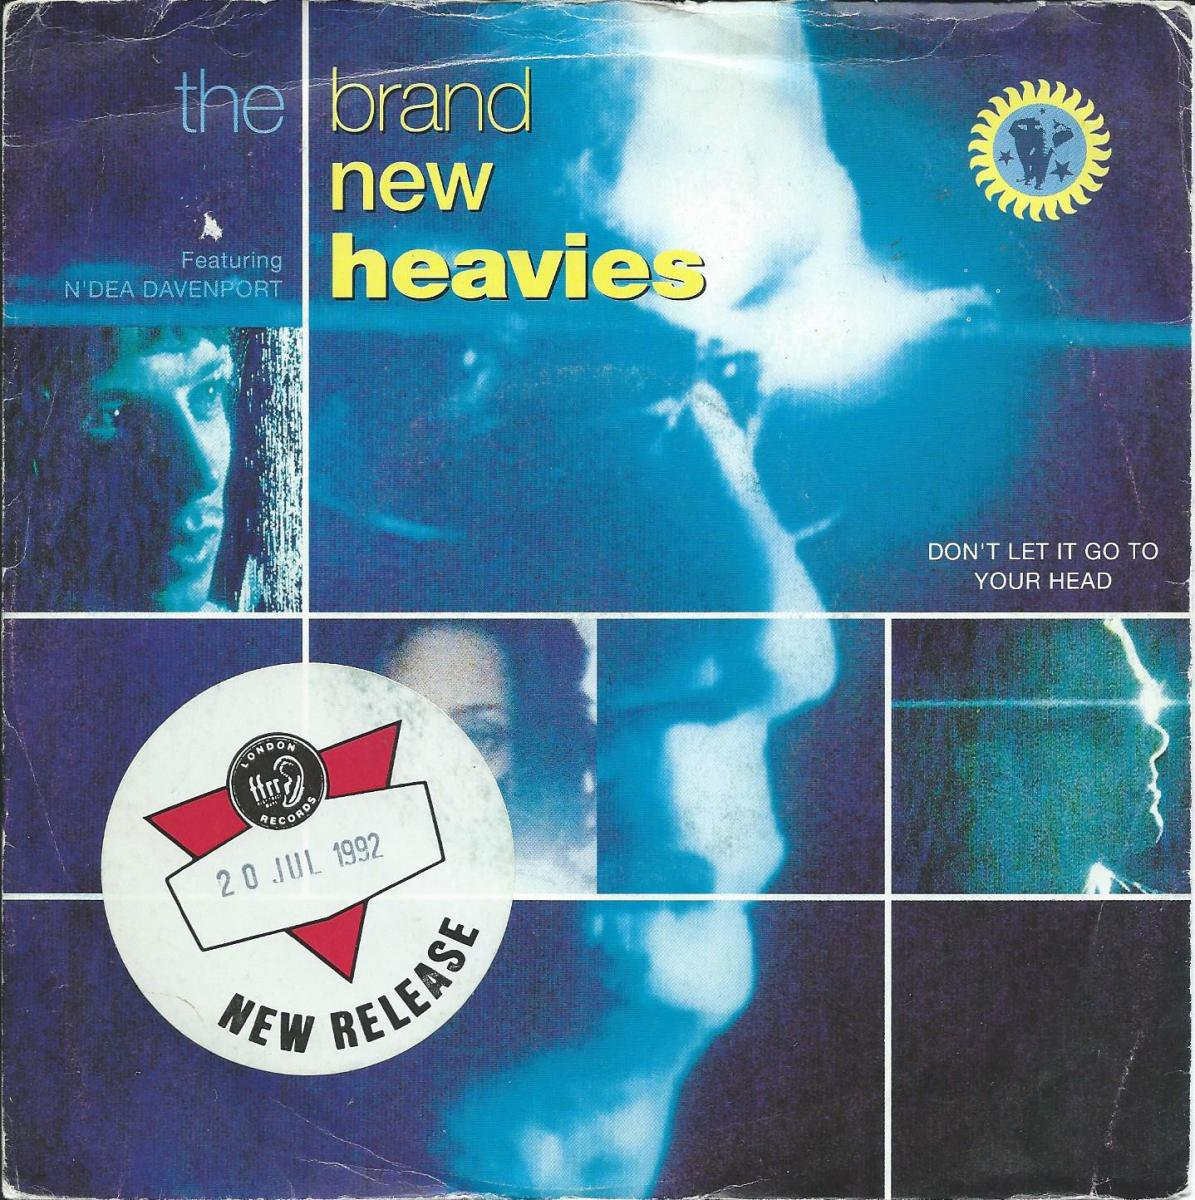 THE BRAND NEW HEAVIES / DON'T LET IT GO TO YOUR HEAD / KEEP IT COMING (EDIT) (7